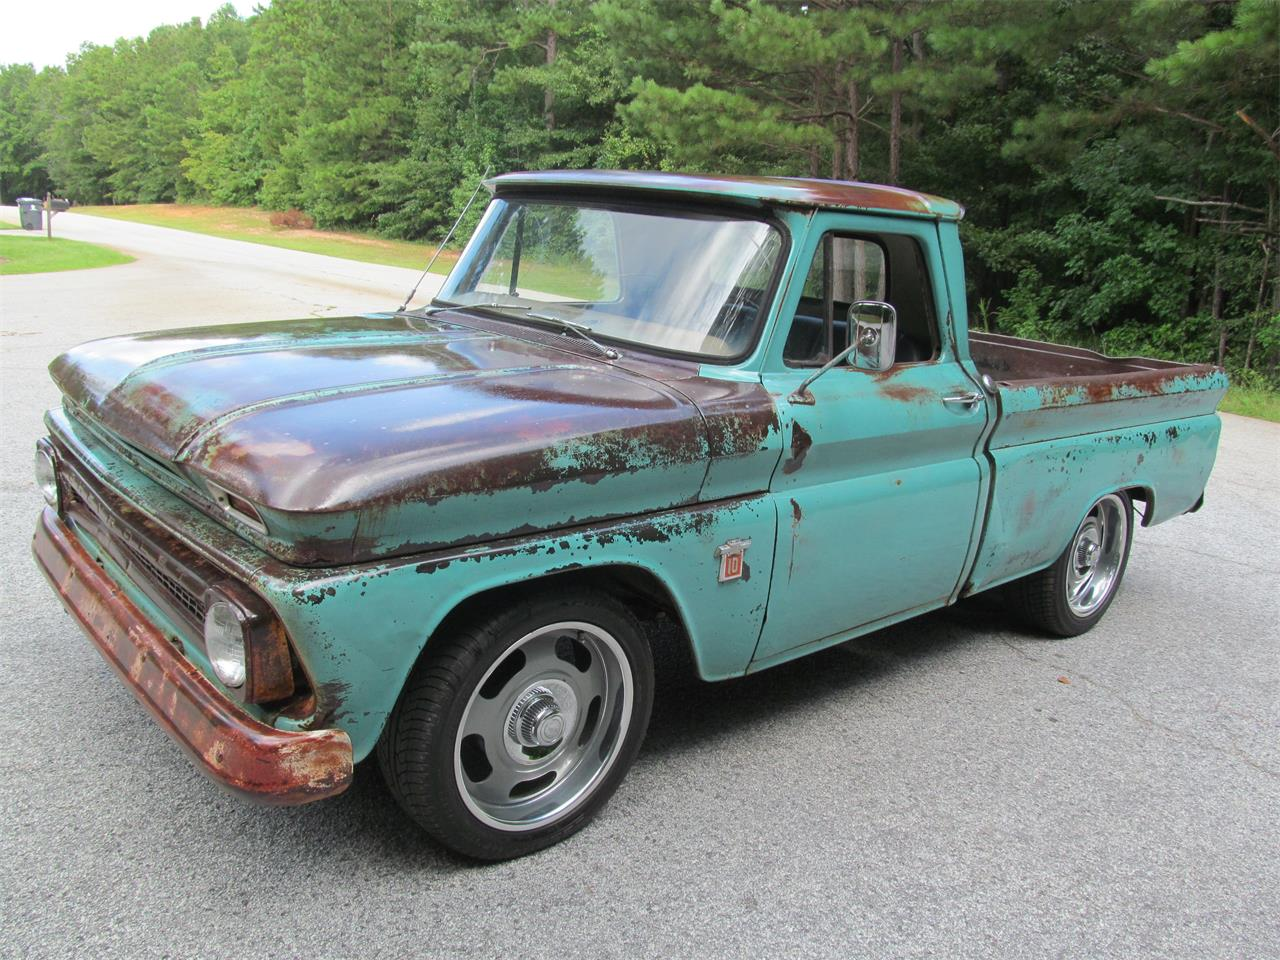 Large Picture of '64 Chevrolet C10 located in Fayetteville Georgia - $13,900.00 - QPJY